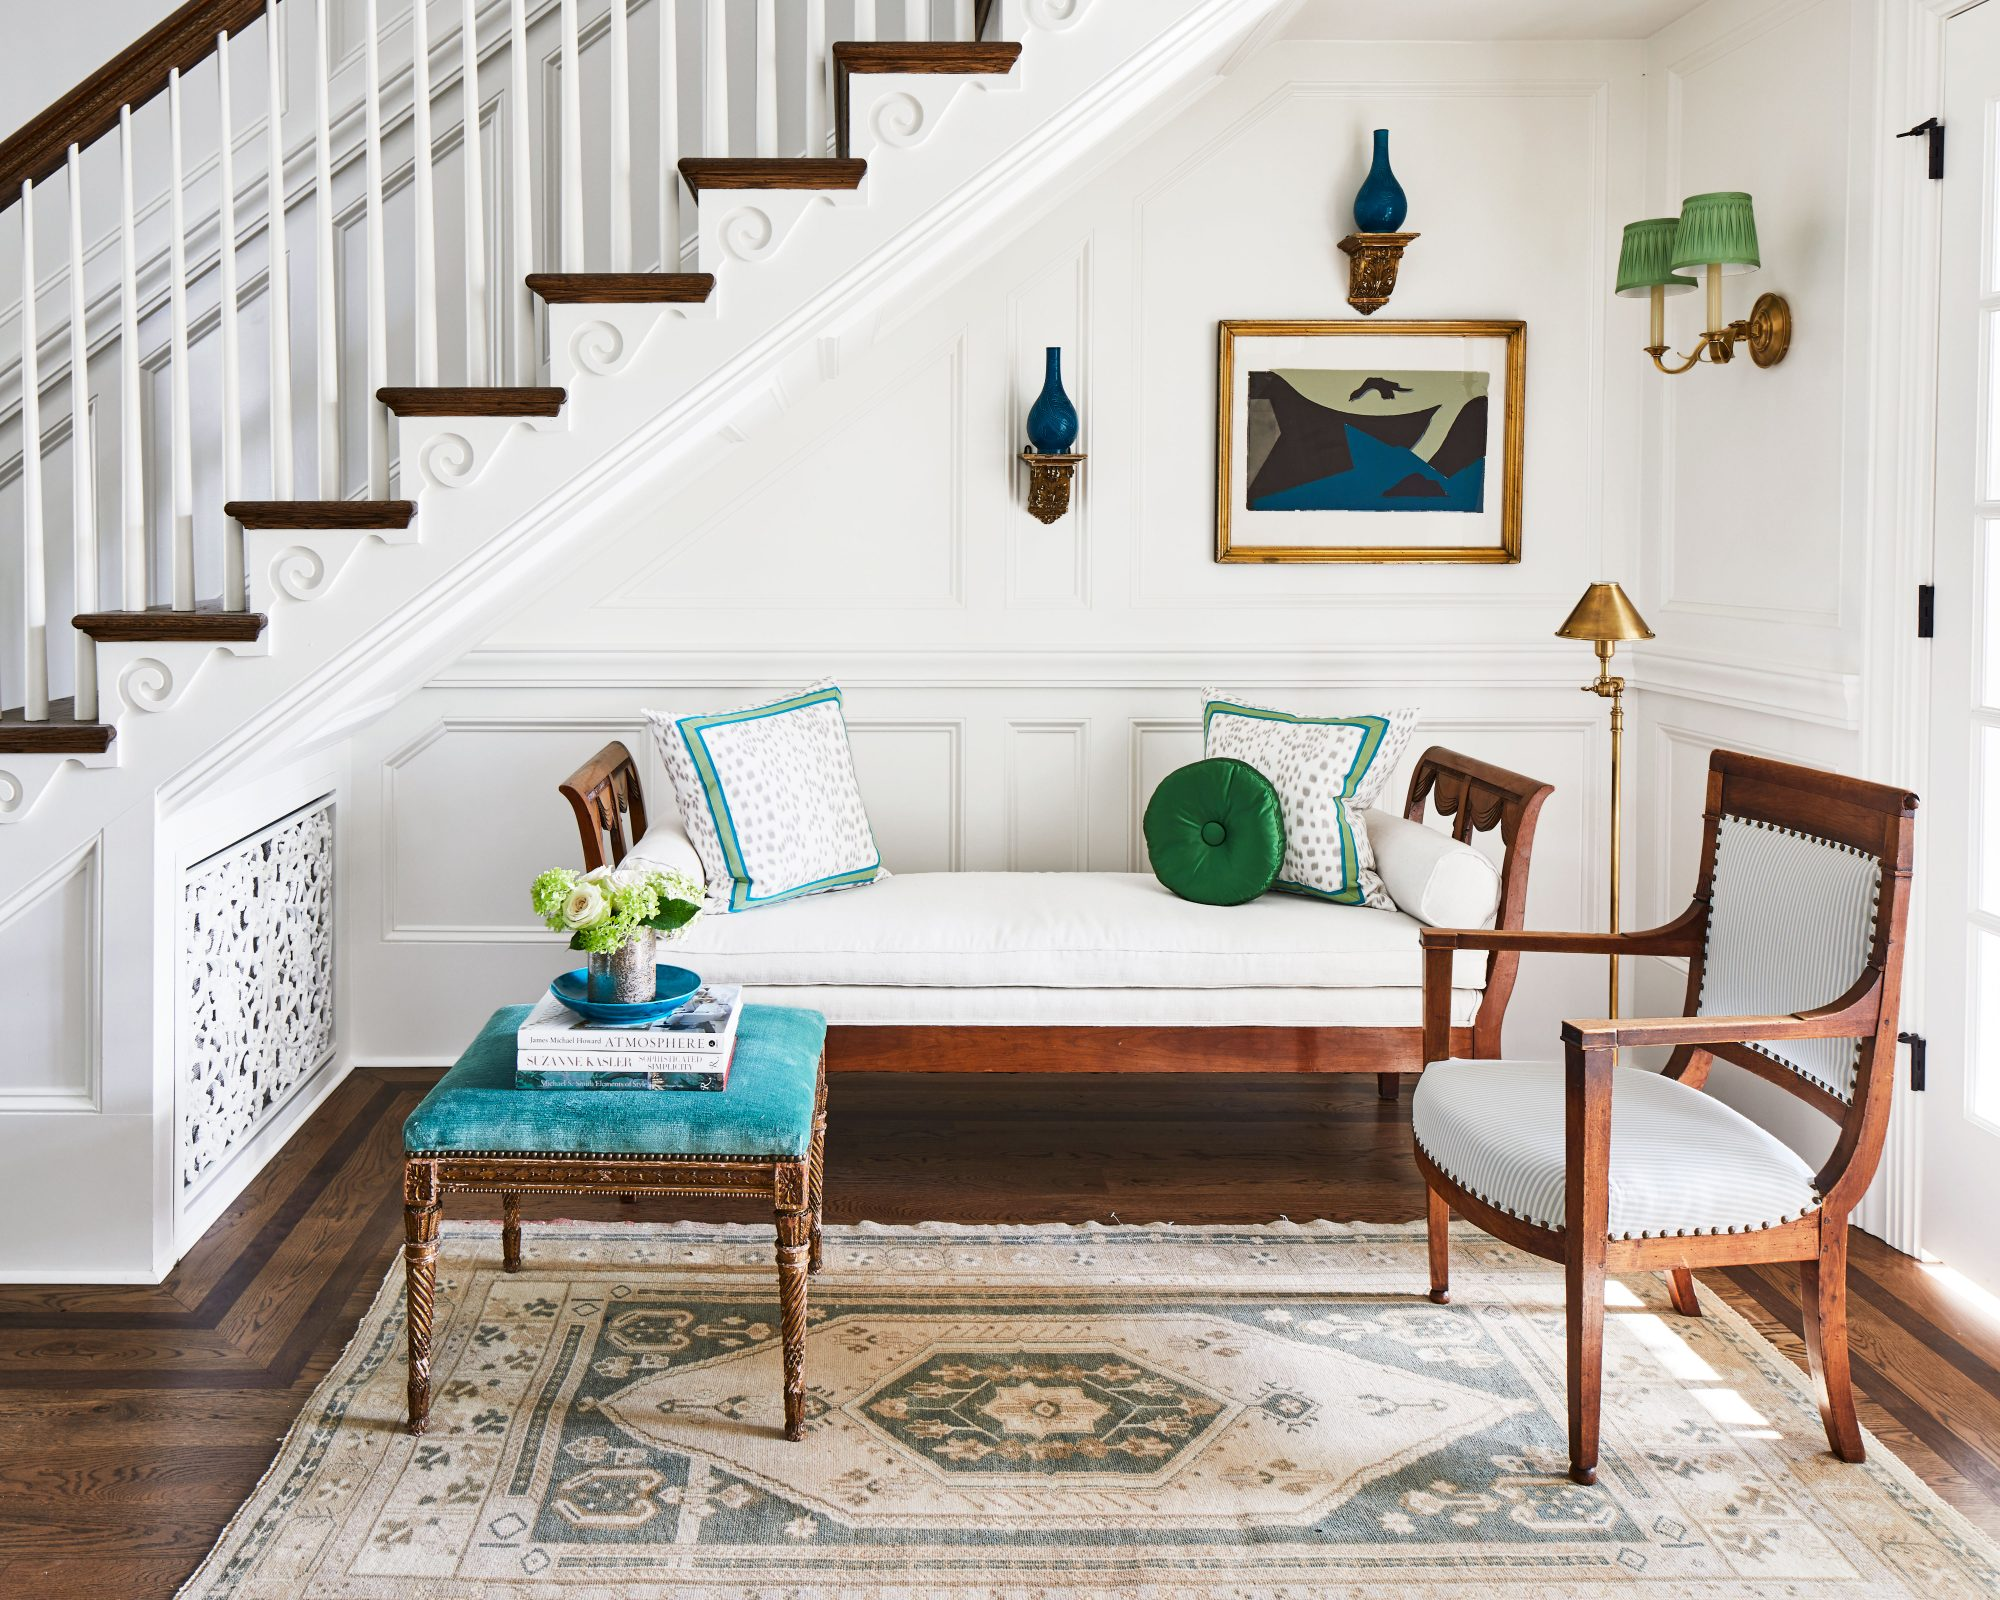 Seating Nook Under the Stairs